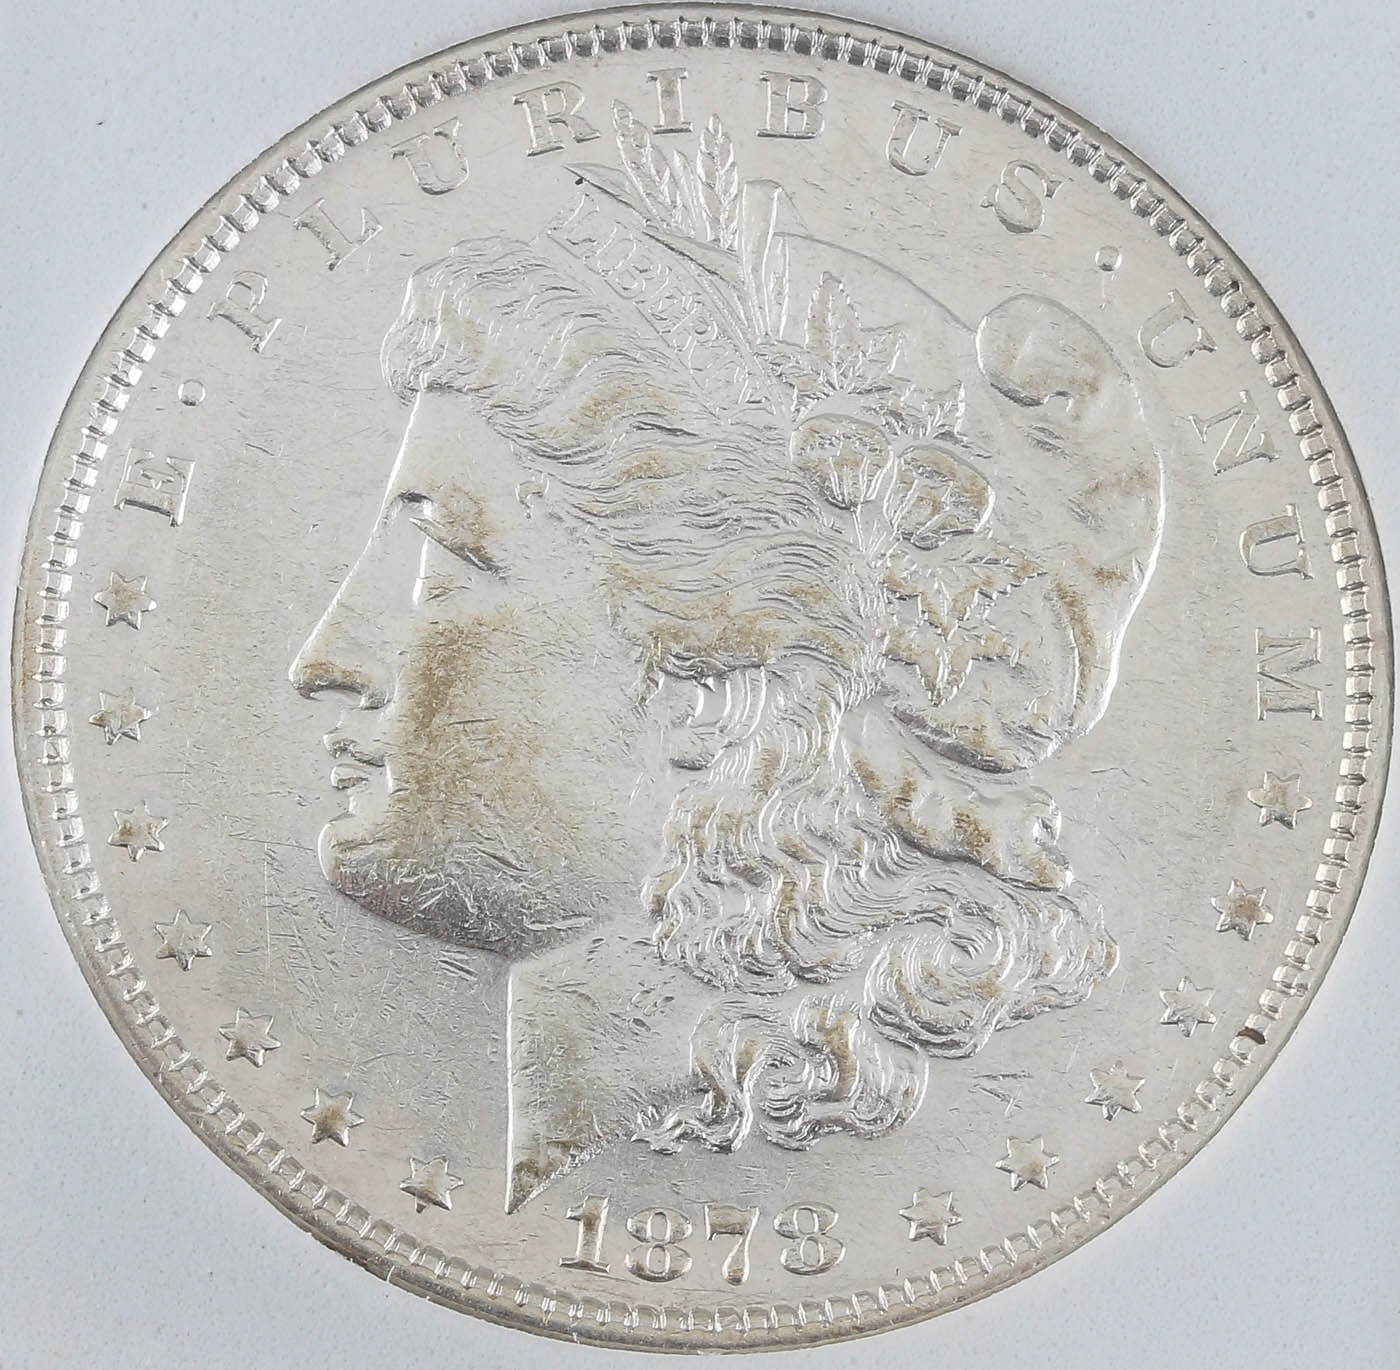 First Year of Issue 1878 Silver Morgan Dollar 7 Tail Feathers Reverse Variety